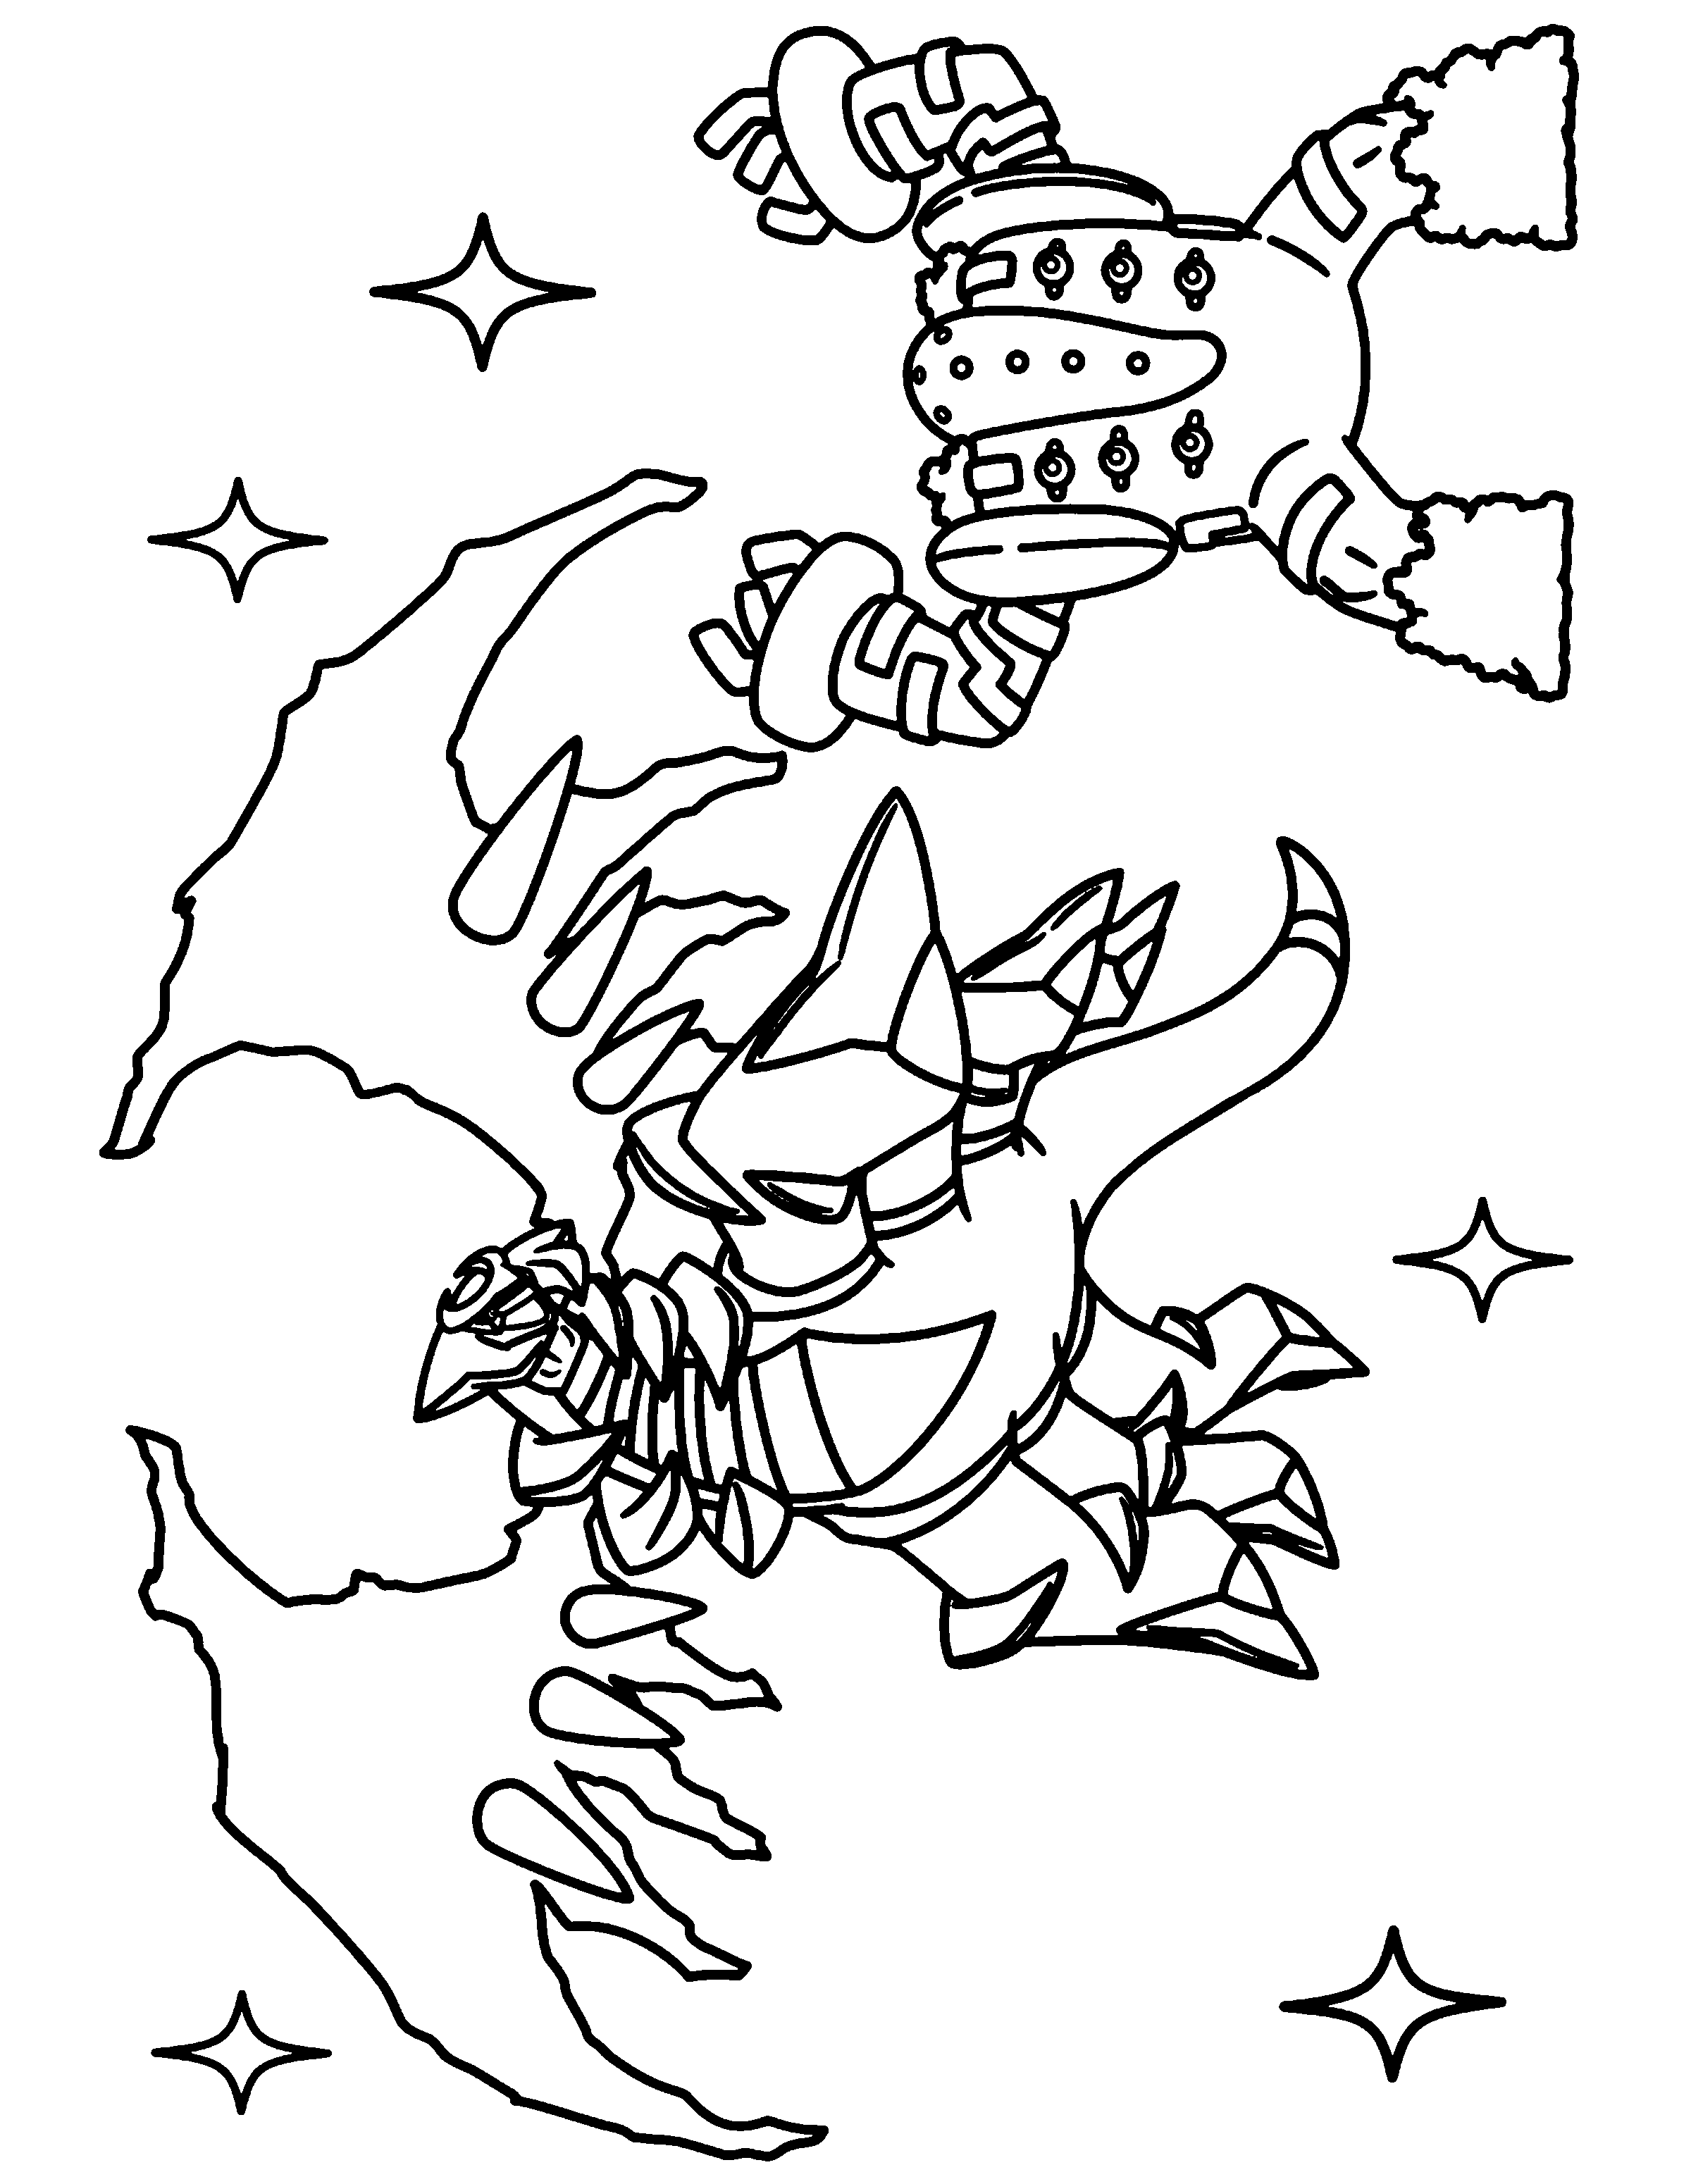 Hoopa Unbound Coloring Pages Coloring Pages